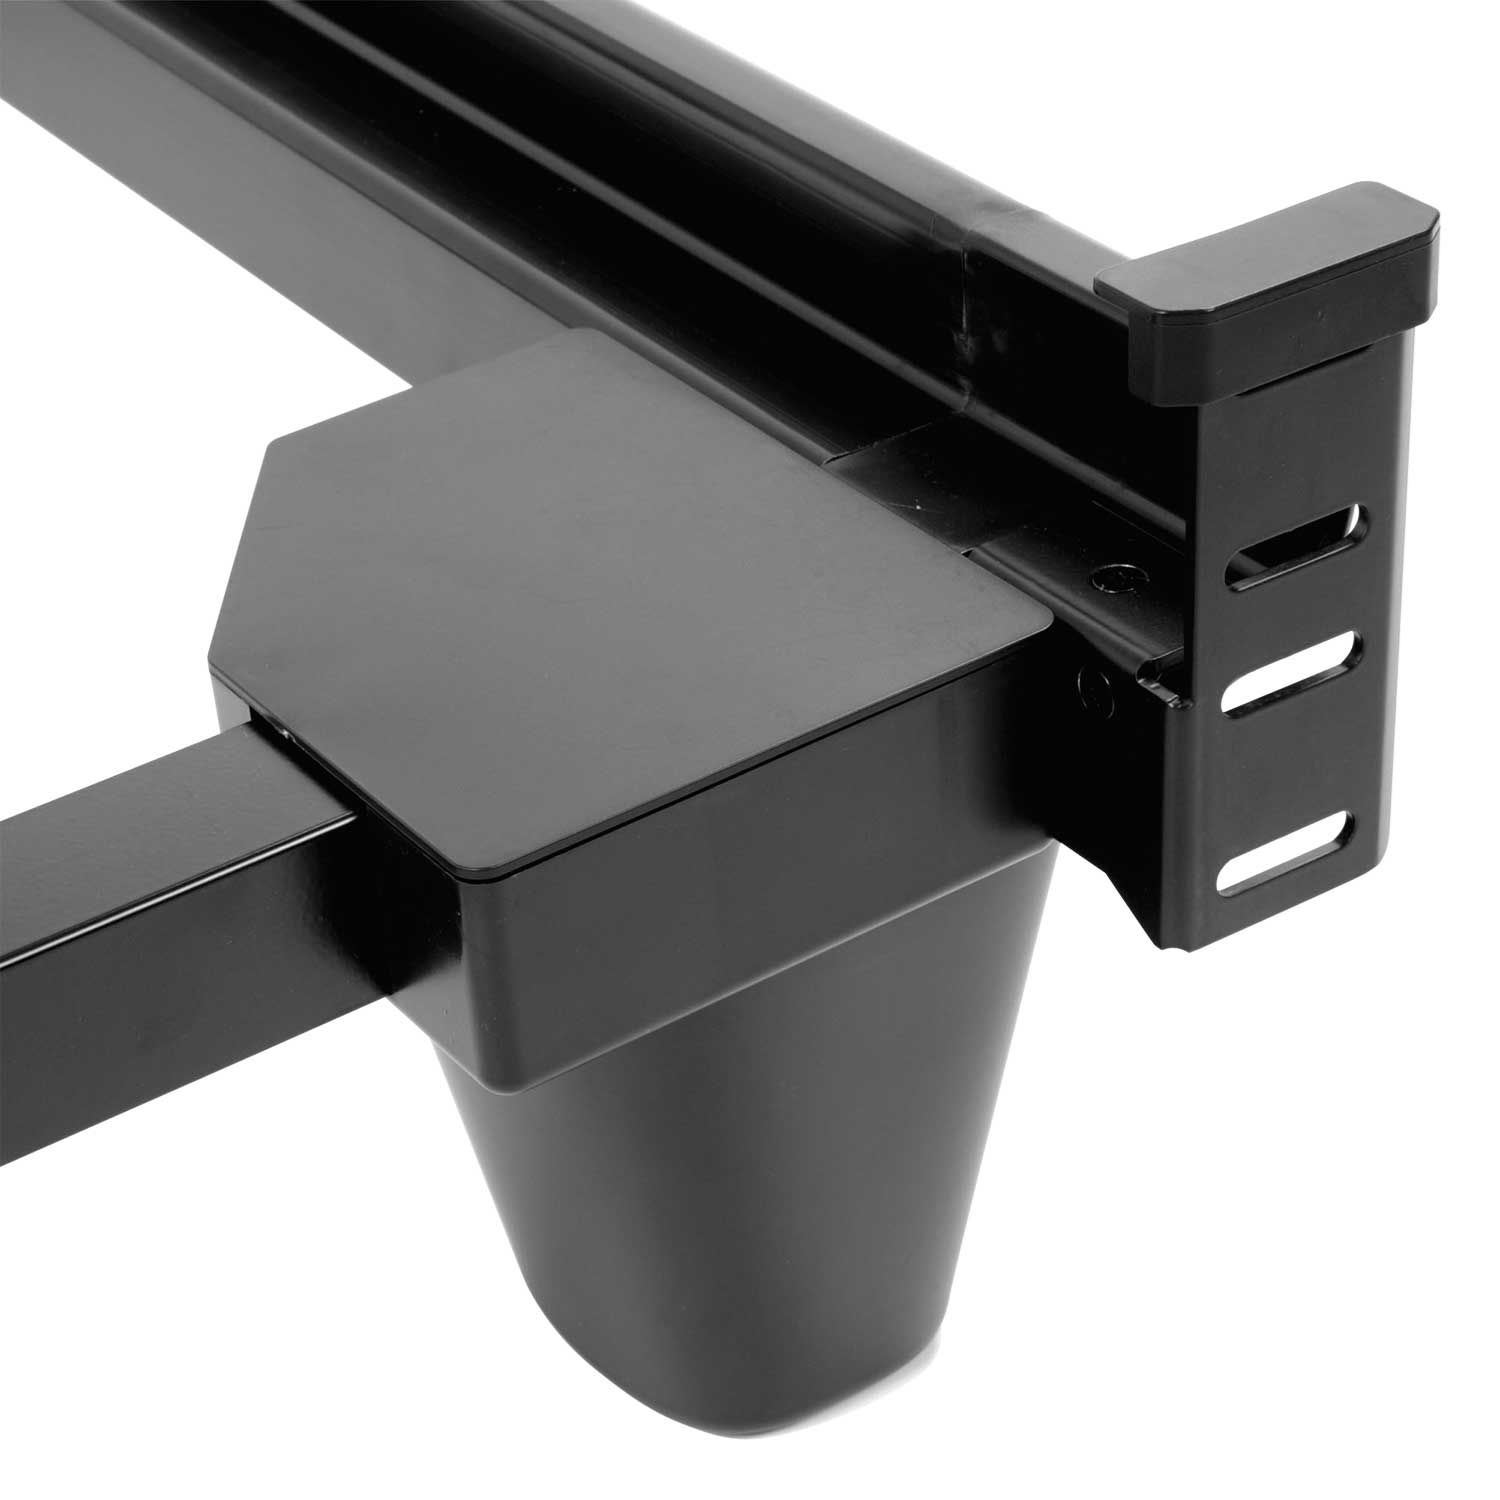 Picture of Presto Bed Frame for Full Queen King California King Sizes